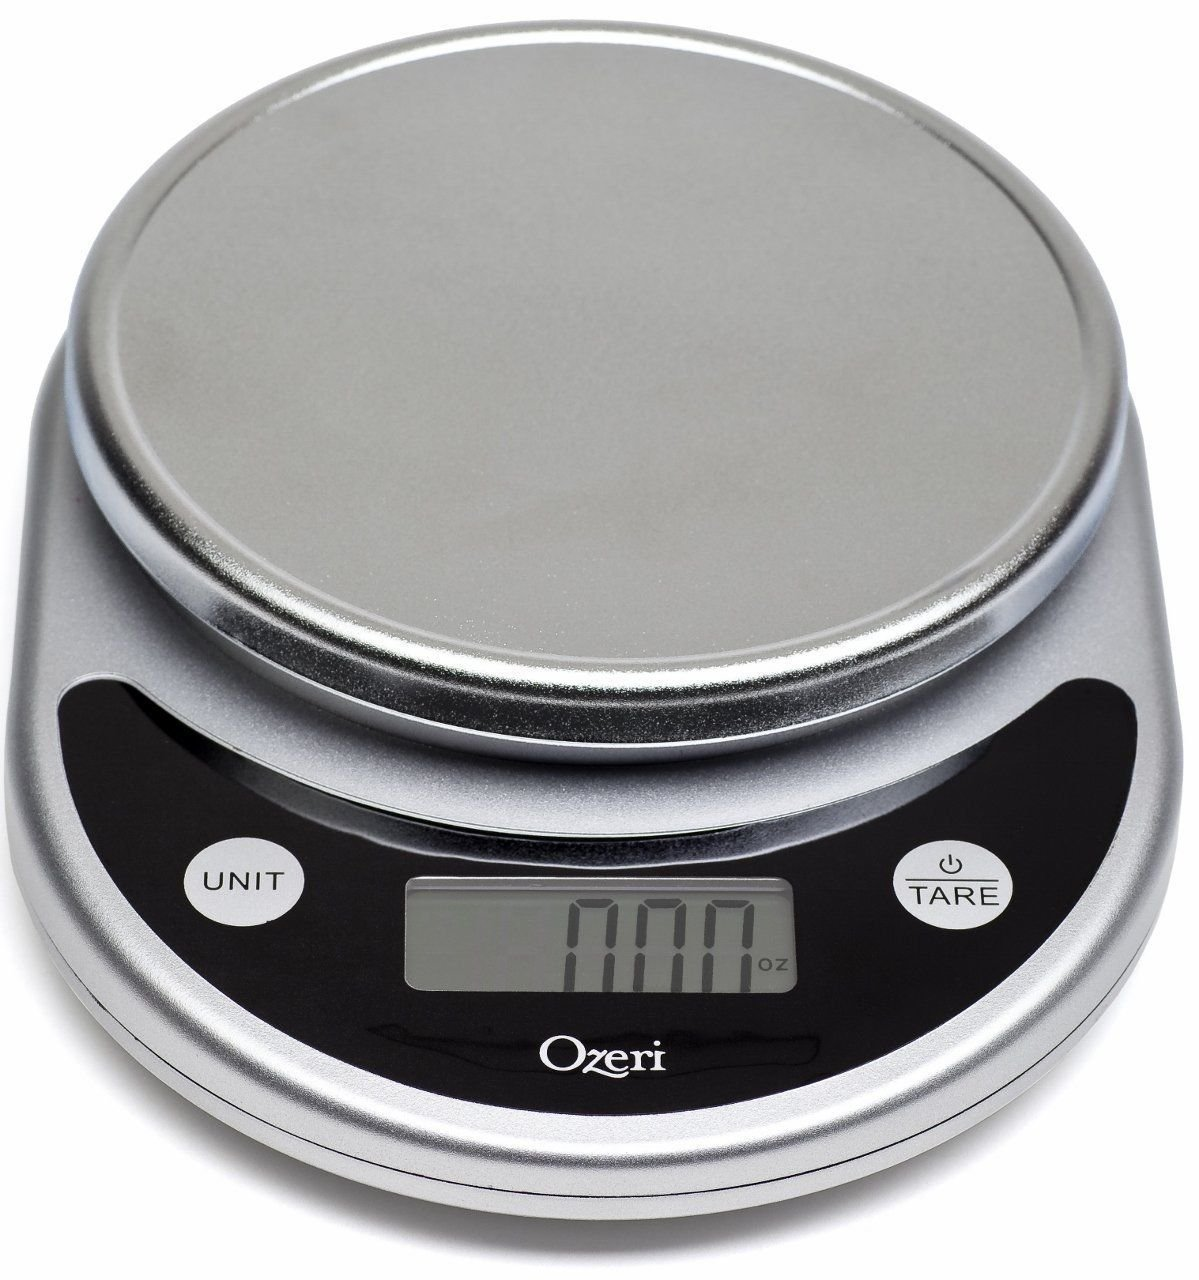 Ozeri ZK14-S Pronto Digital Multifunction Kitchen and Food Scale, Elegant Black by Ozeri